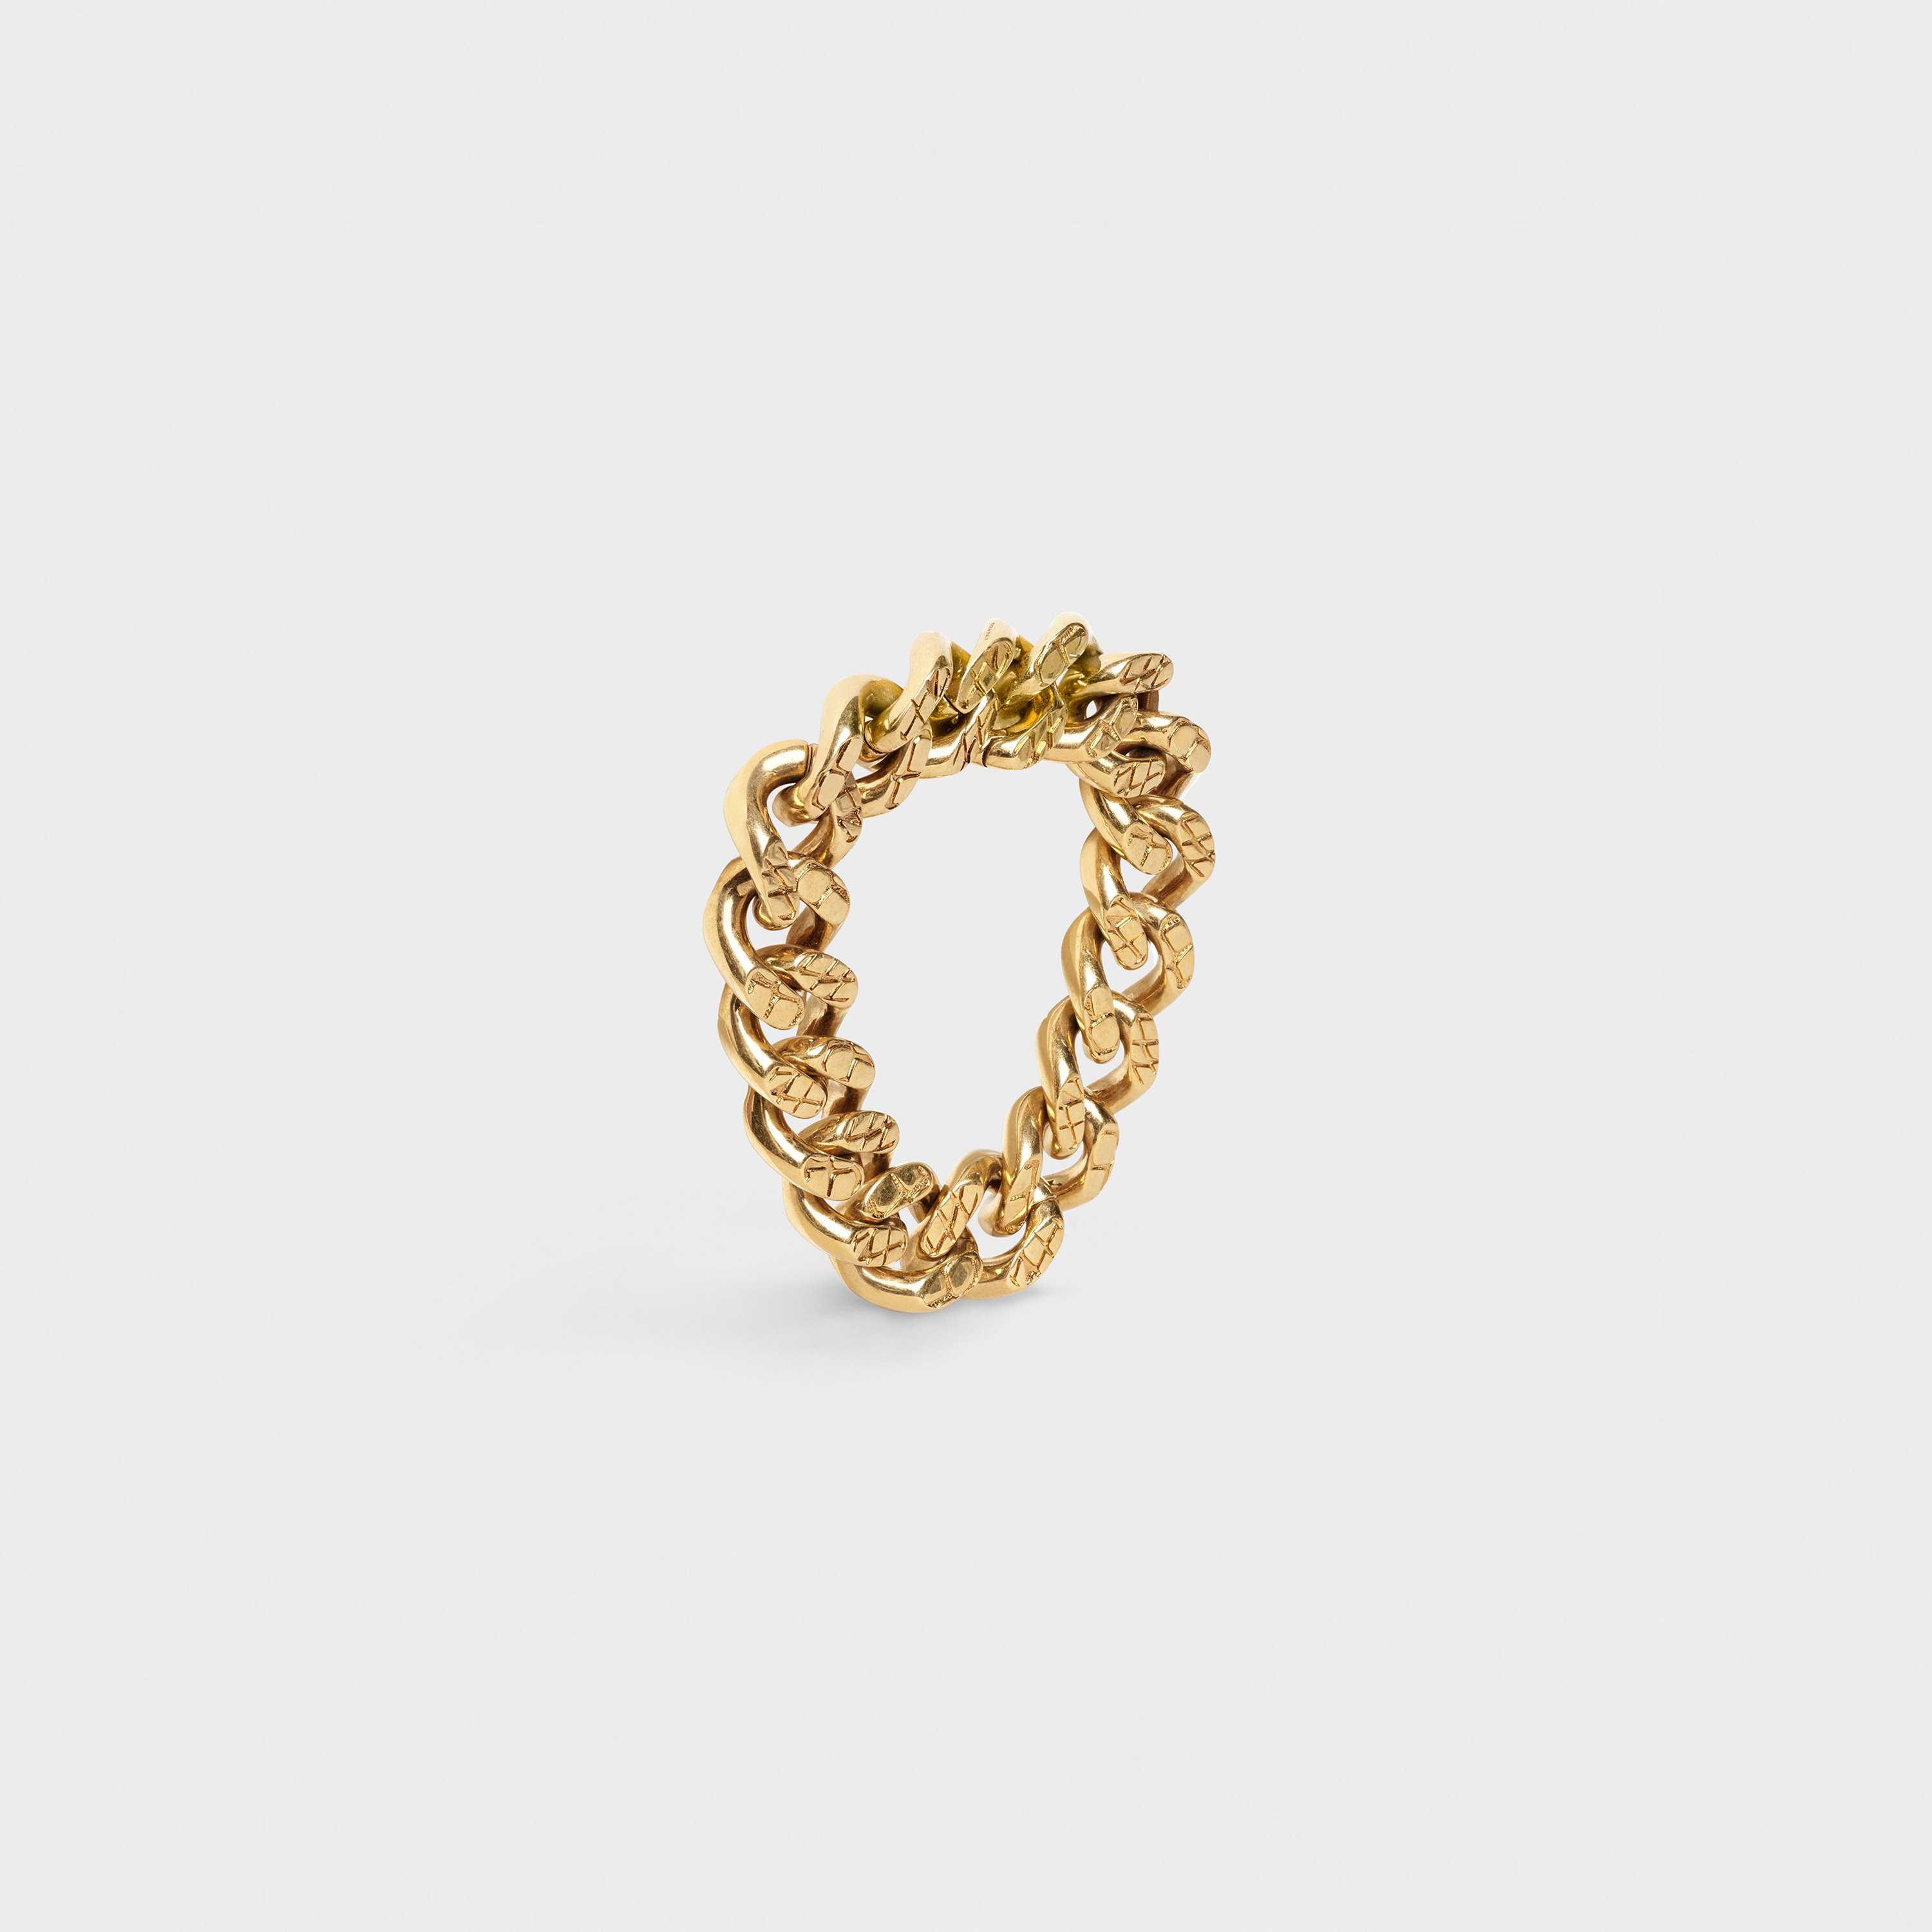 Celine Animals bracelet in brass with vintage gold finish | CELINE